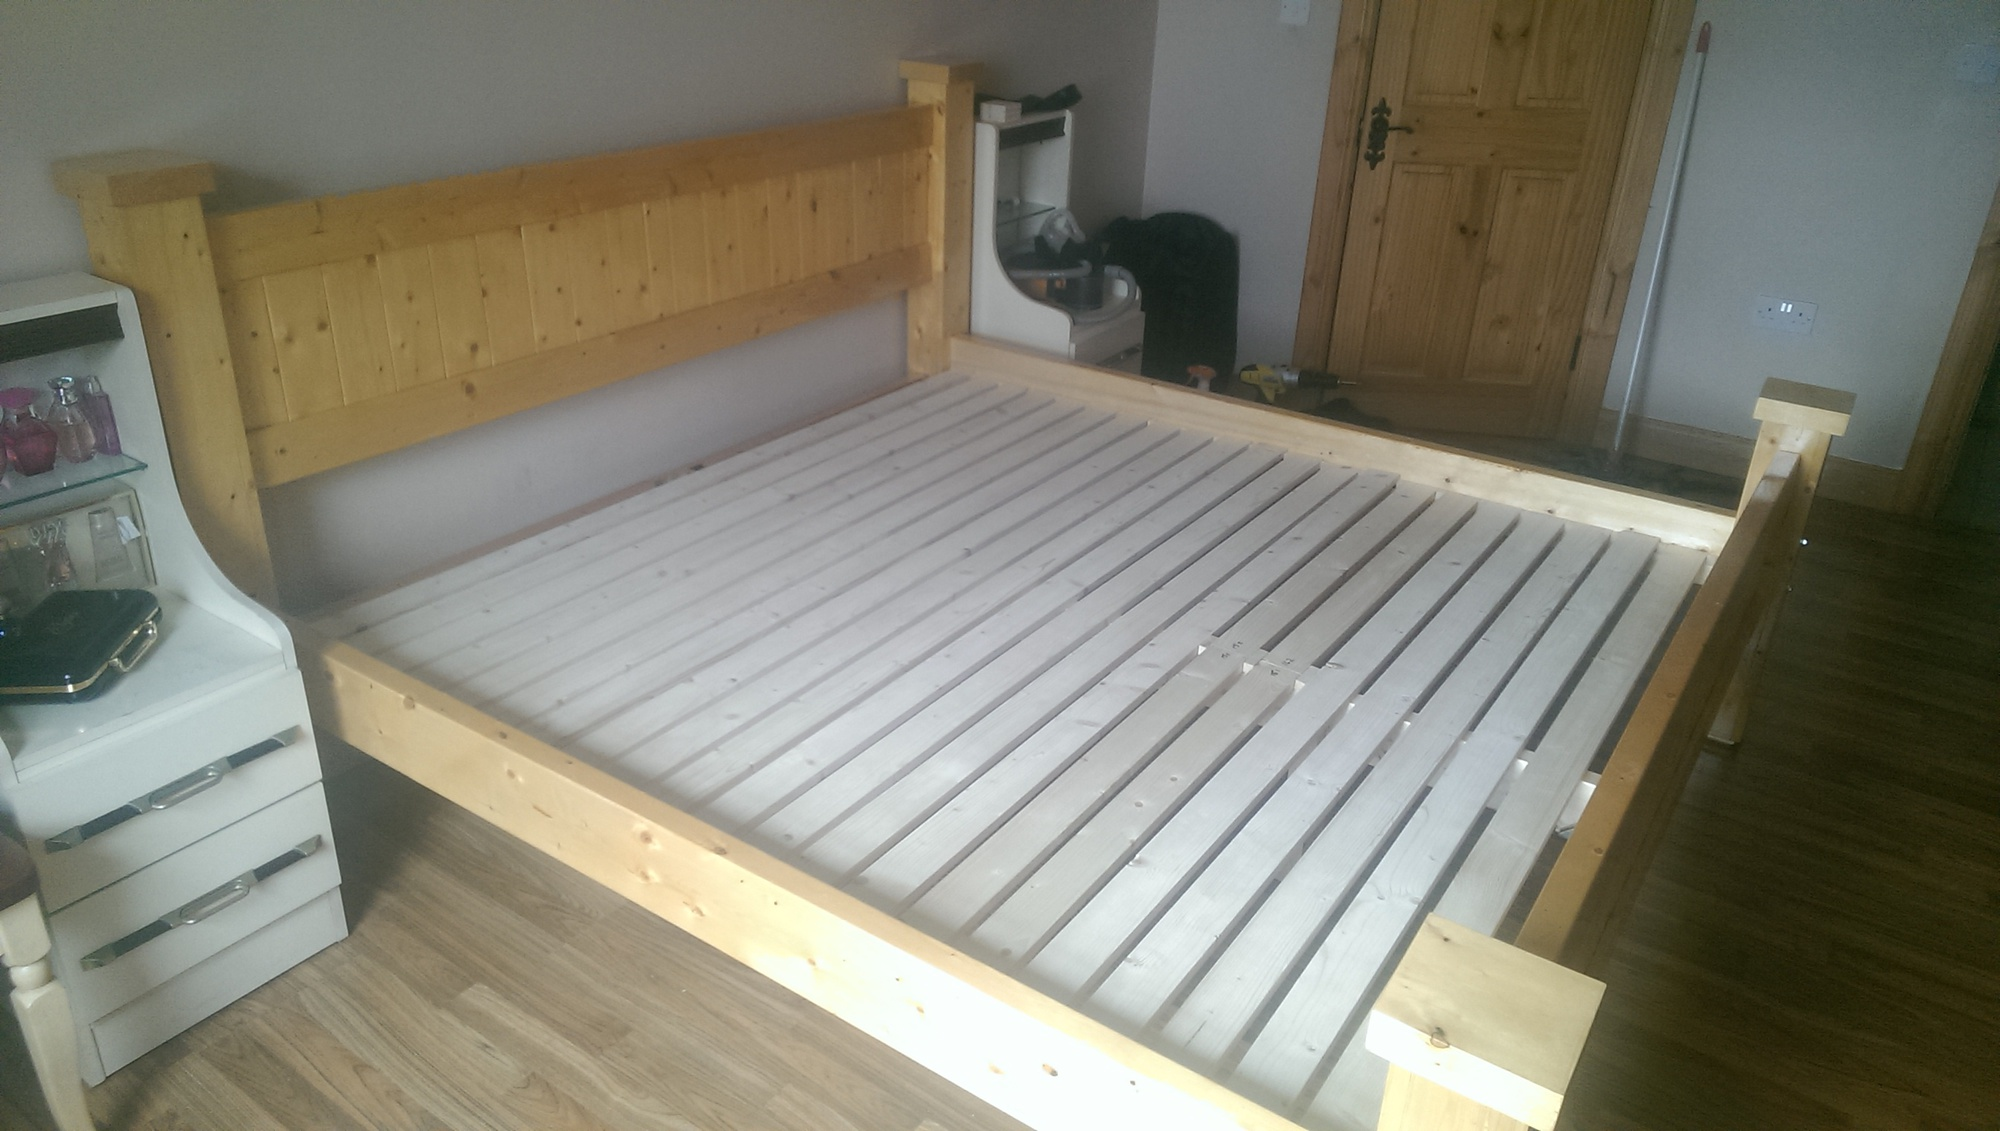 How To Add Mattress Support Slats to Bed Frame Page 2 Router